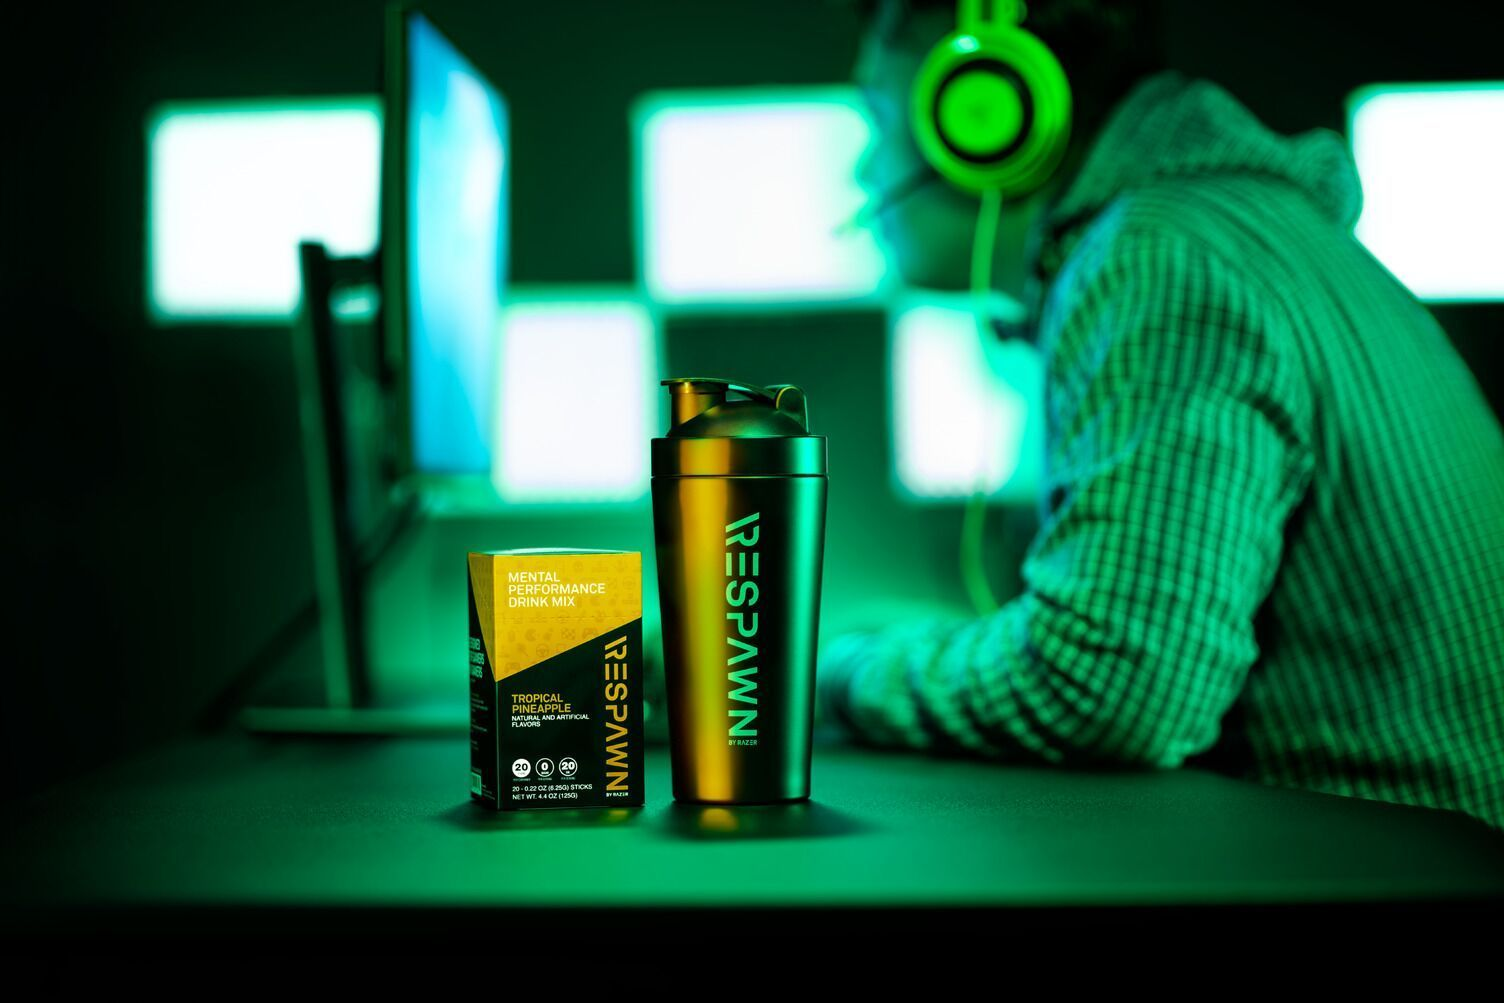 Razer Respawn: A 'mental performance drink' for people who